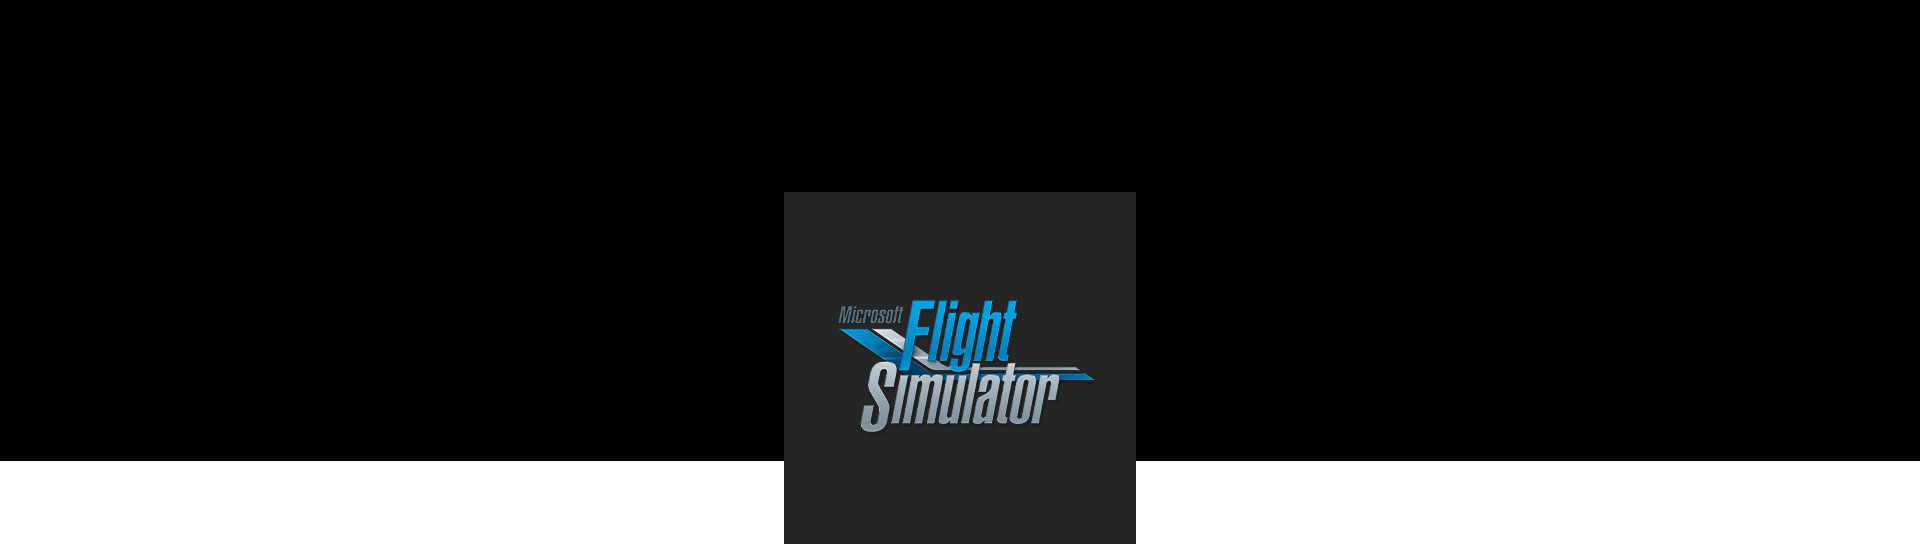 Logotipo de Microsoft Flight Simulator